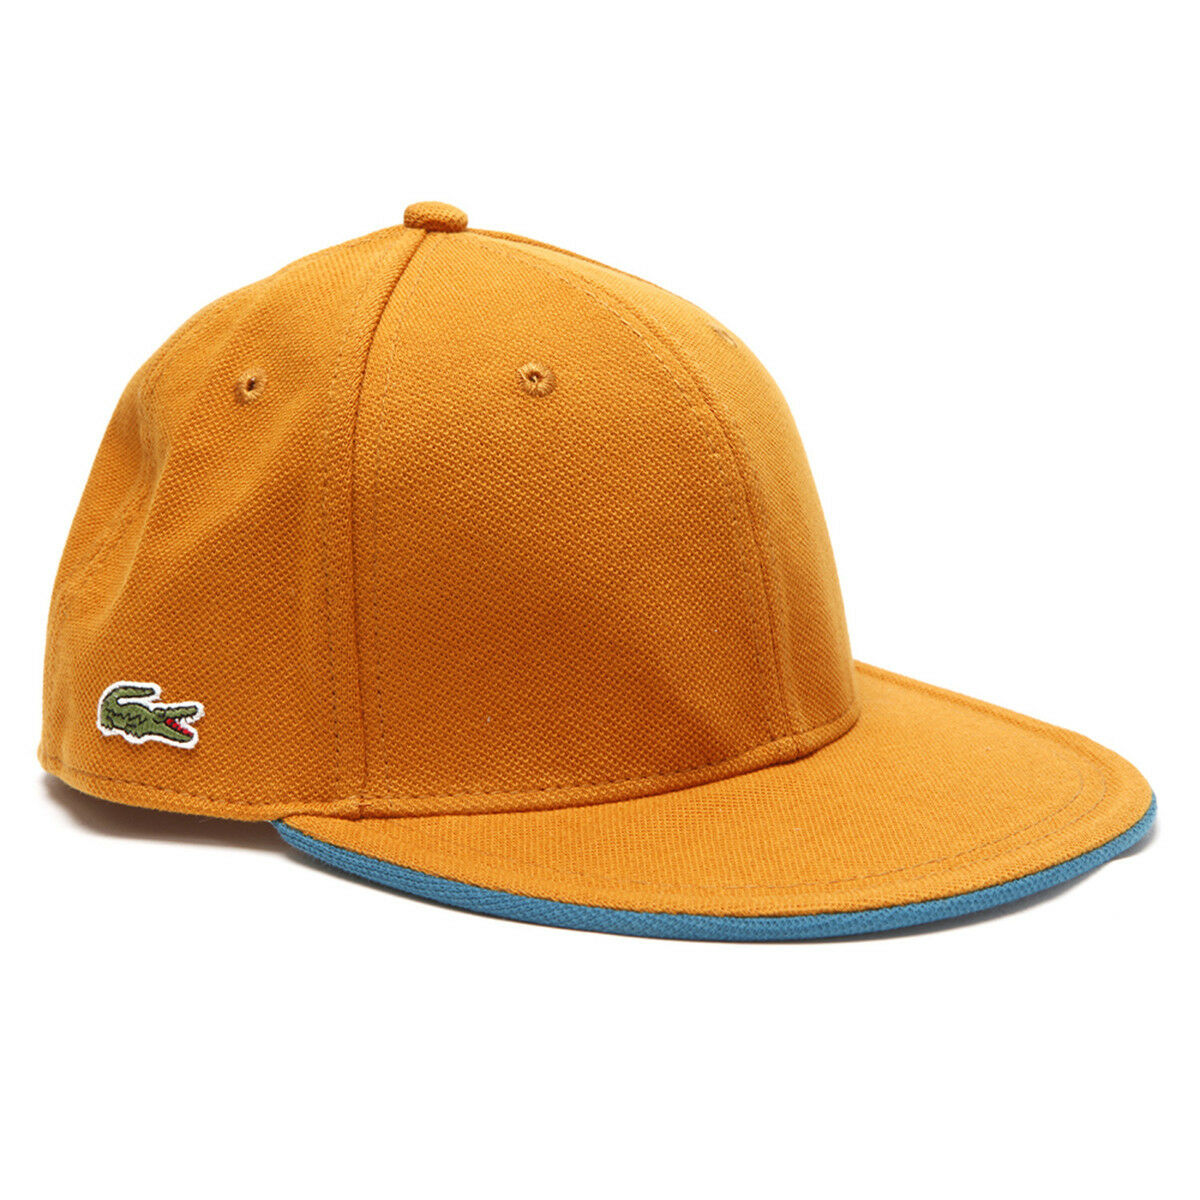 3d948fd759fd ... men fafc9 2513c coupon code lacoste mens l ve rk0450 flat brim hat cap  orange size m 57cm. ...